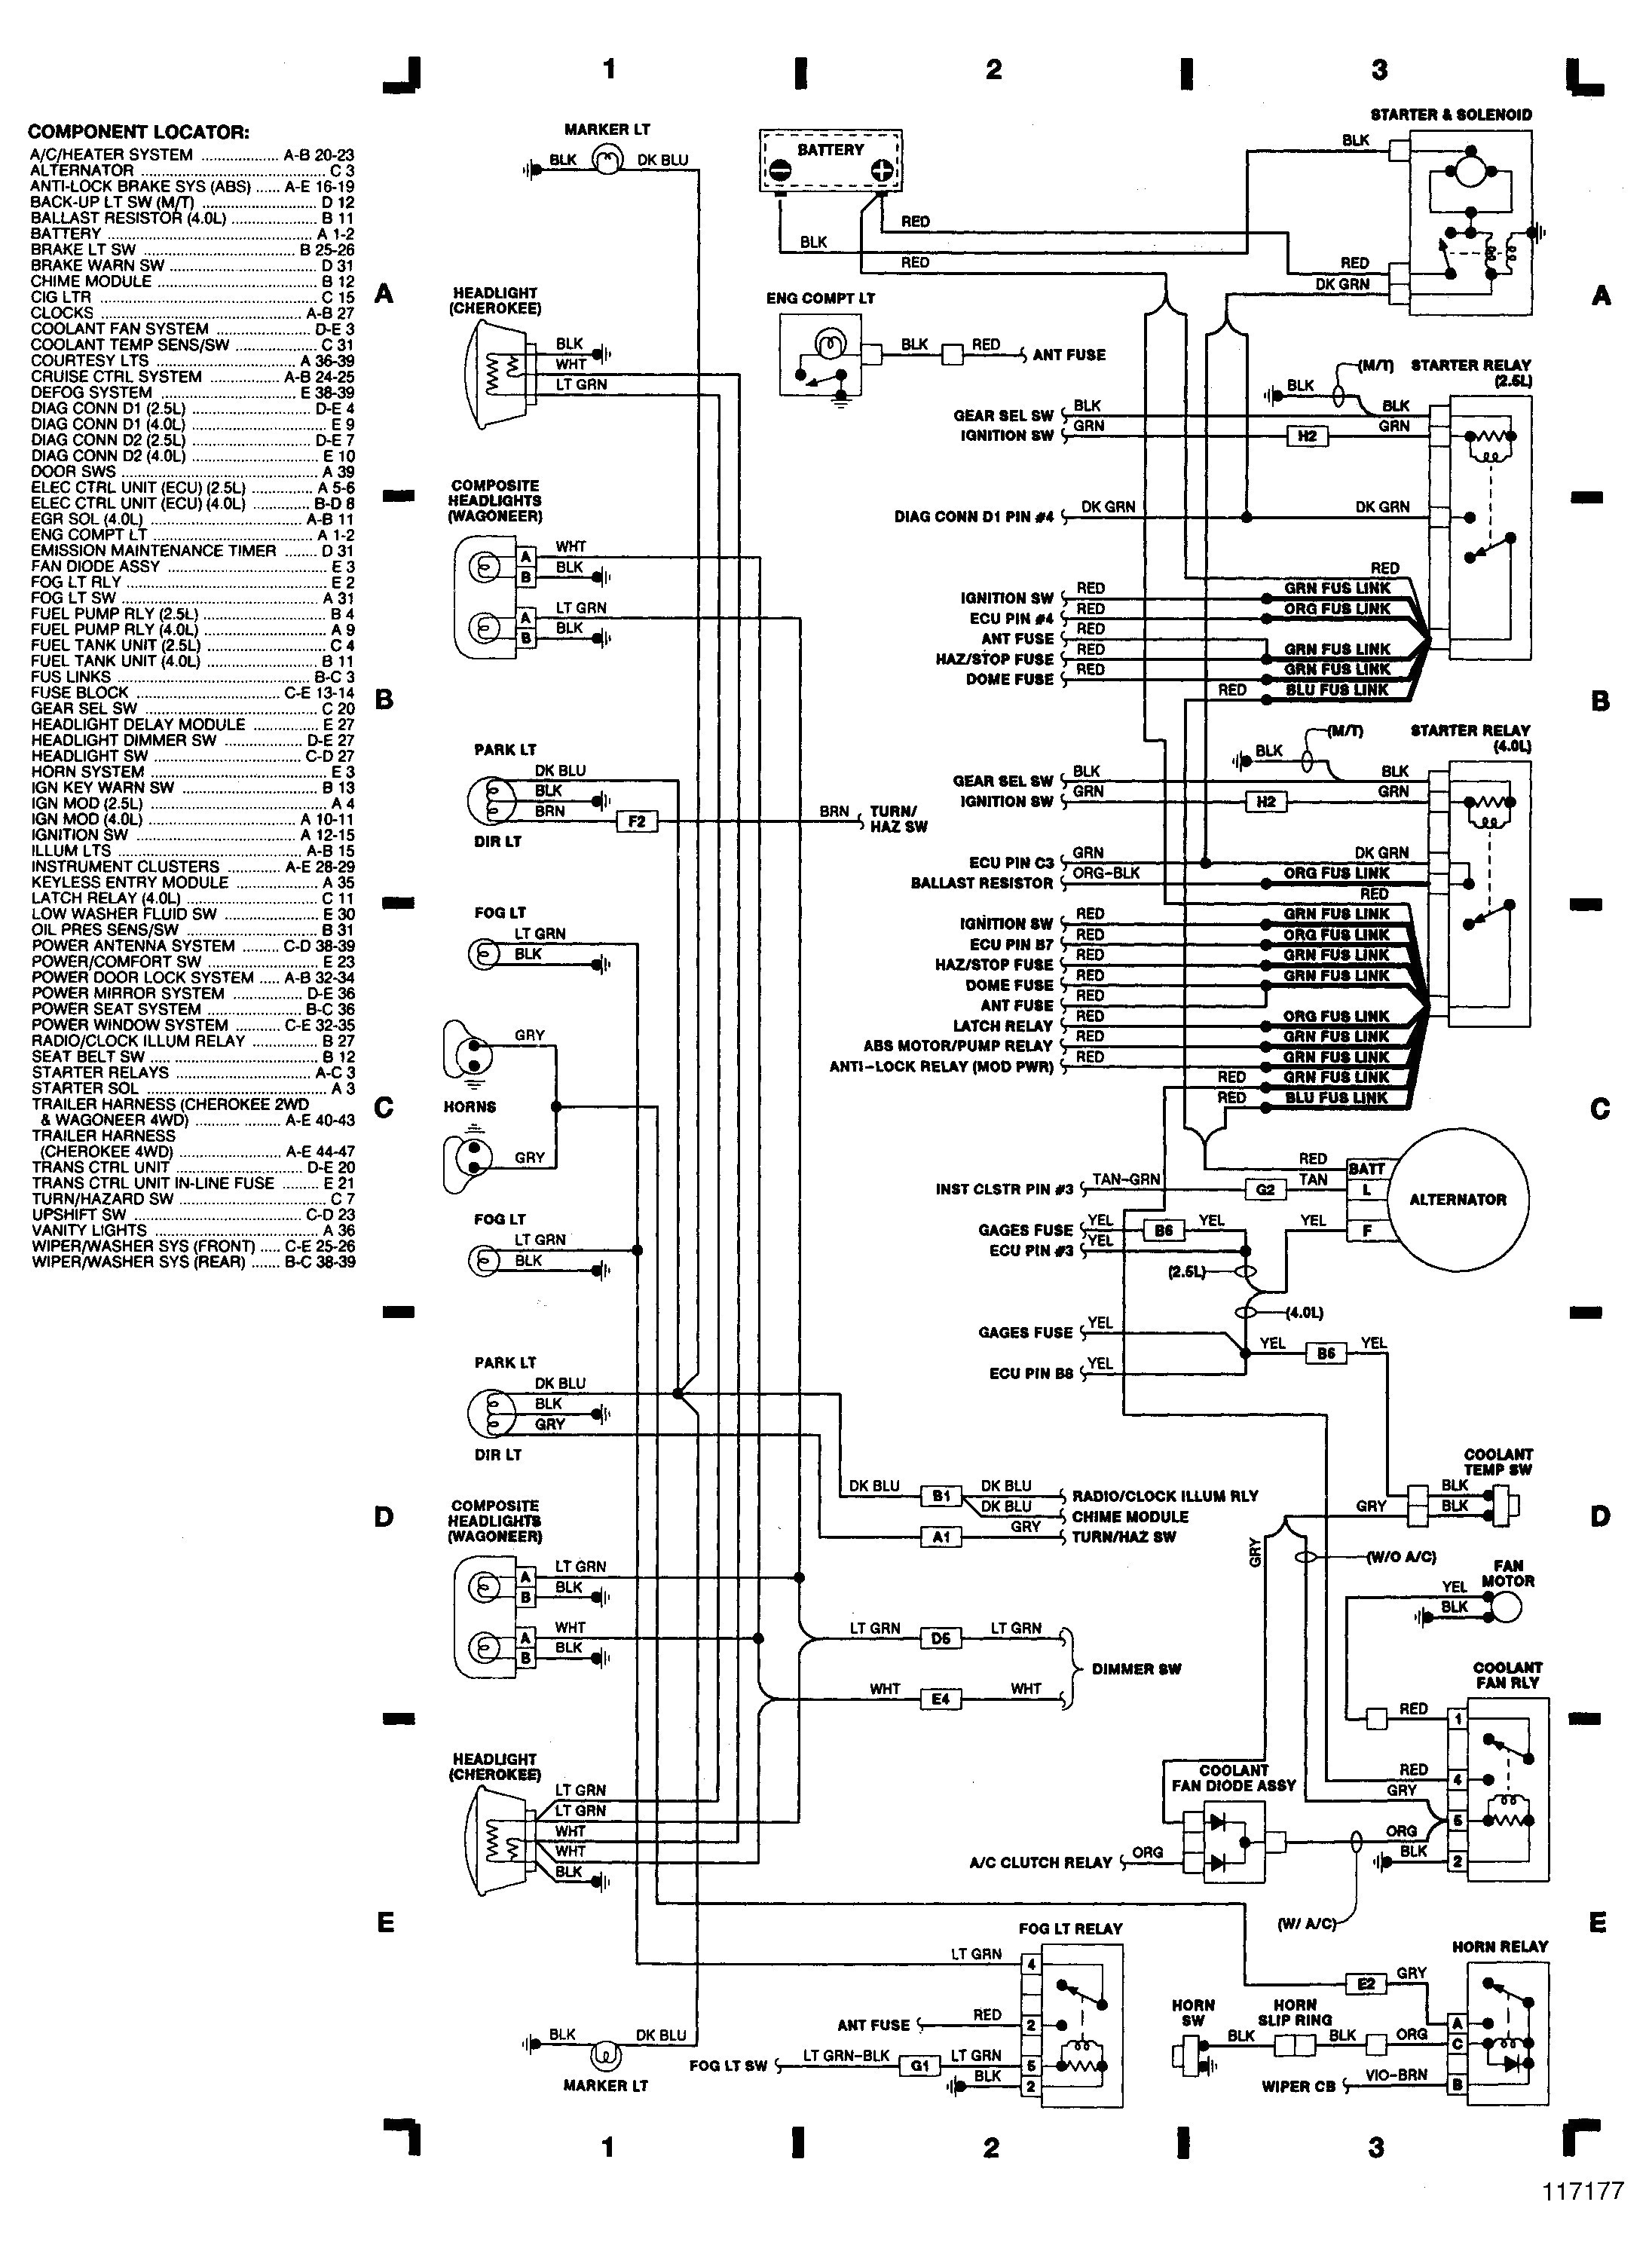 wiring diagram for 1995 jeep grand cherokee wiring diagram files wiring diagram for 1995 jeep grand